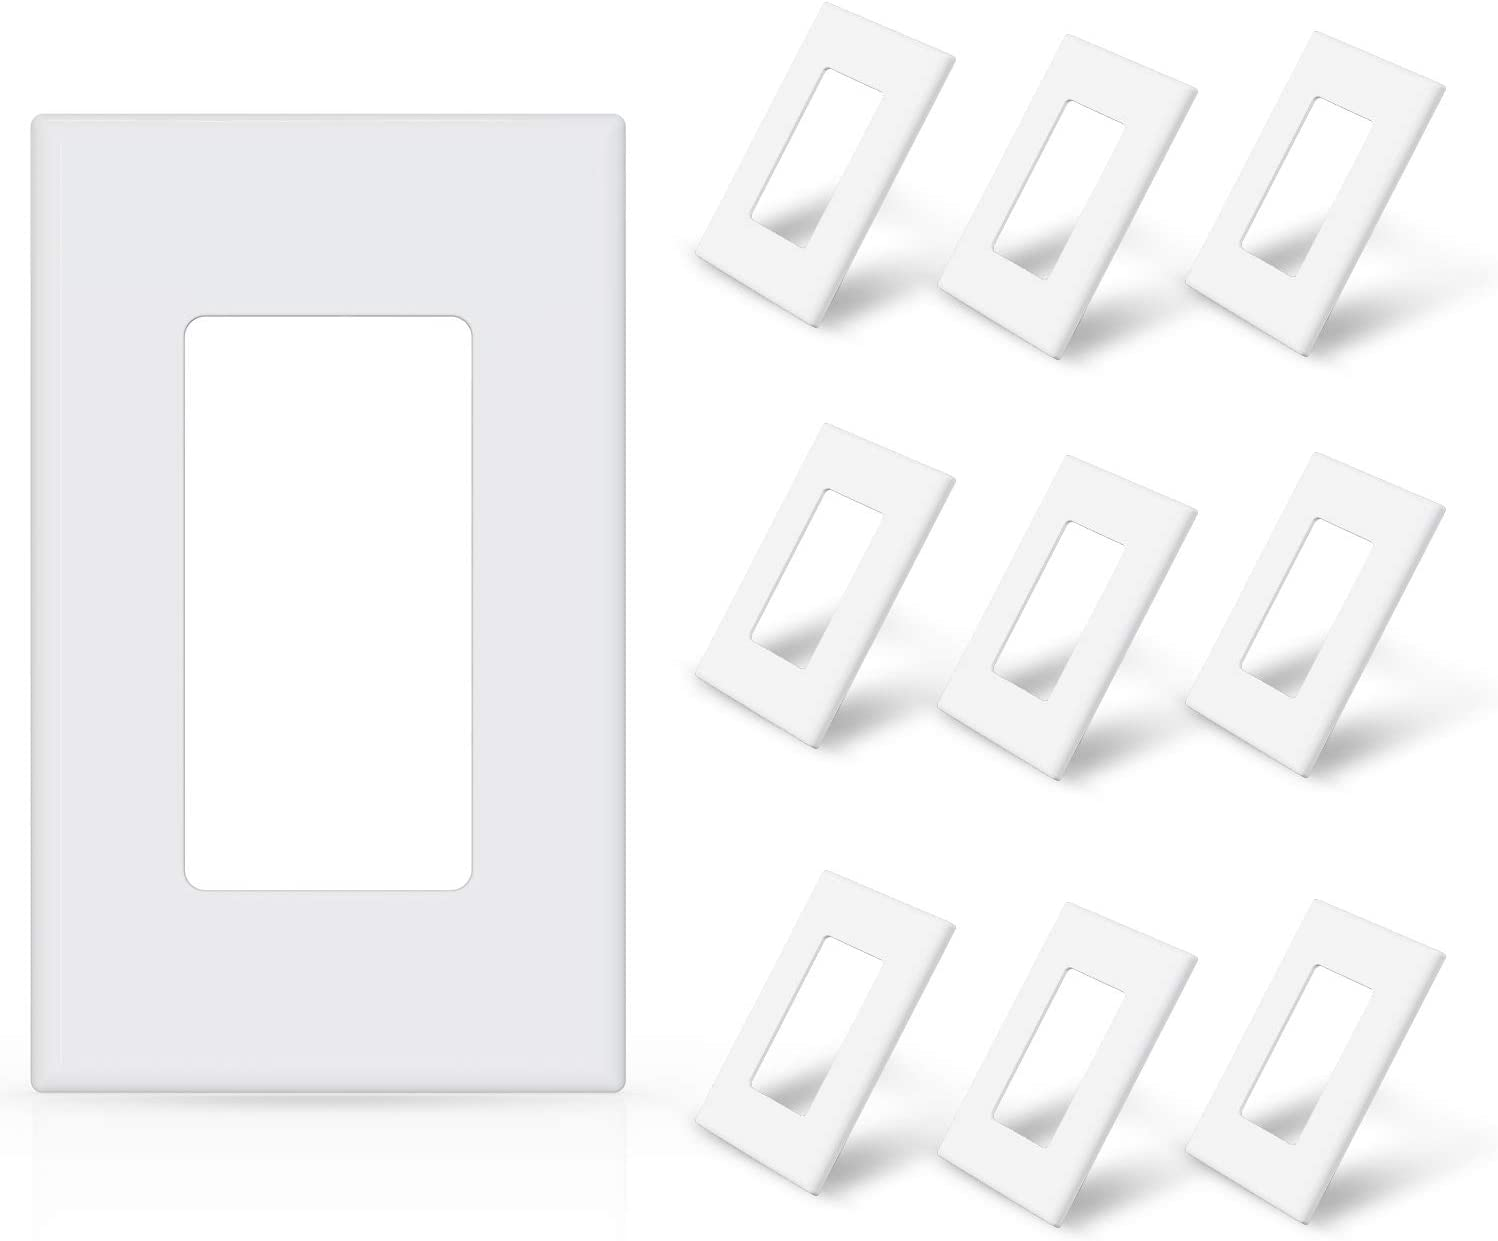 ELEGRP 1-Gang Screwless Decorative Wall Plates, Standard Size Unbreakable Thermoplastic Faceplate Cover for Decorator Receptacle Outlet Switch, UL Listed (10 Pack, Glossy White)